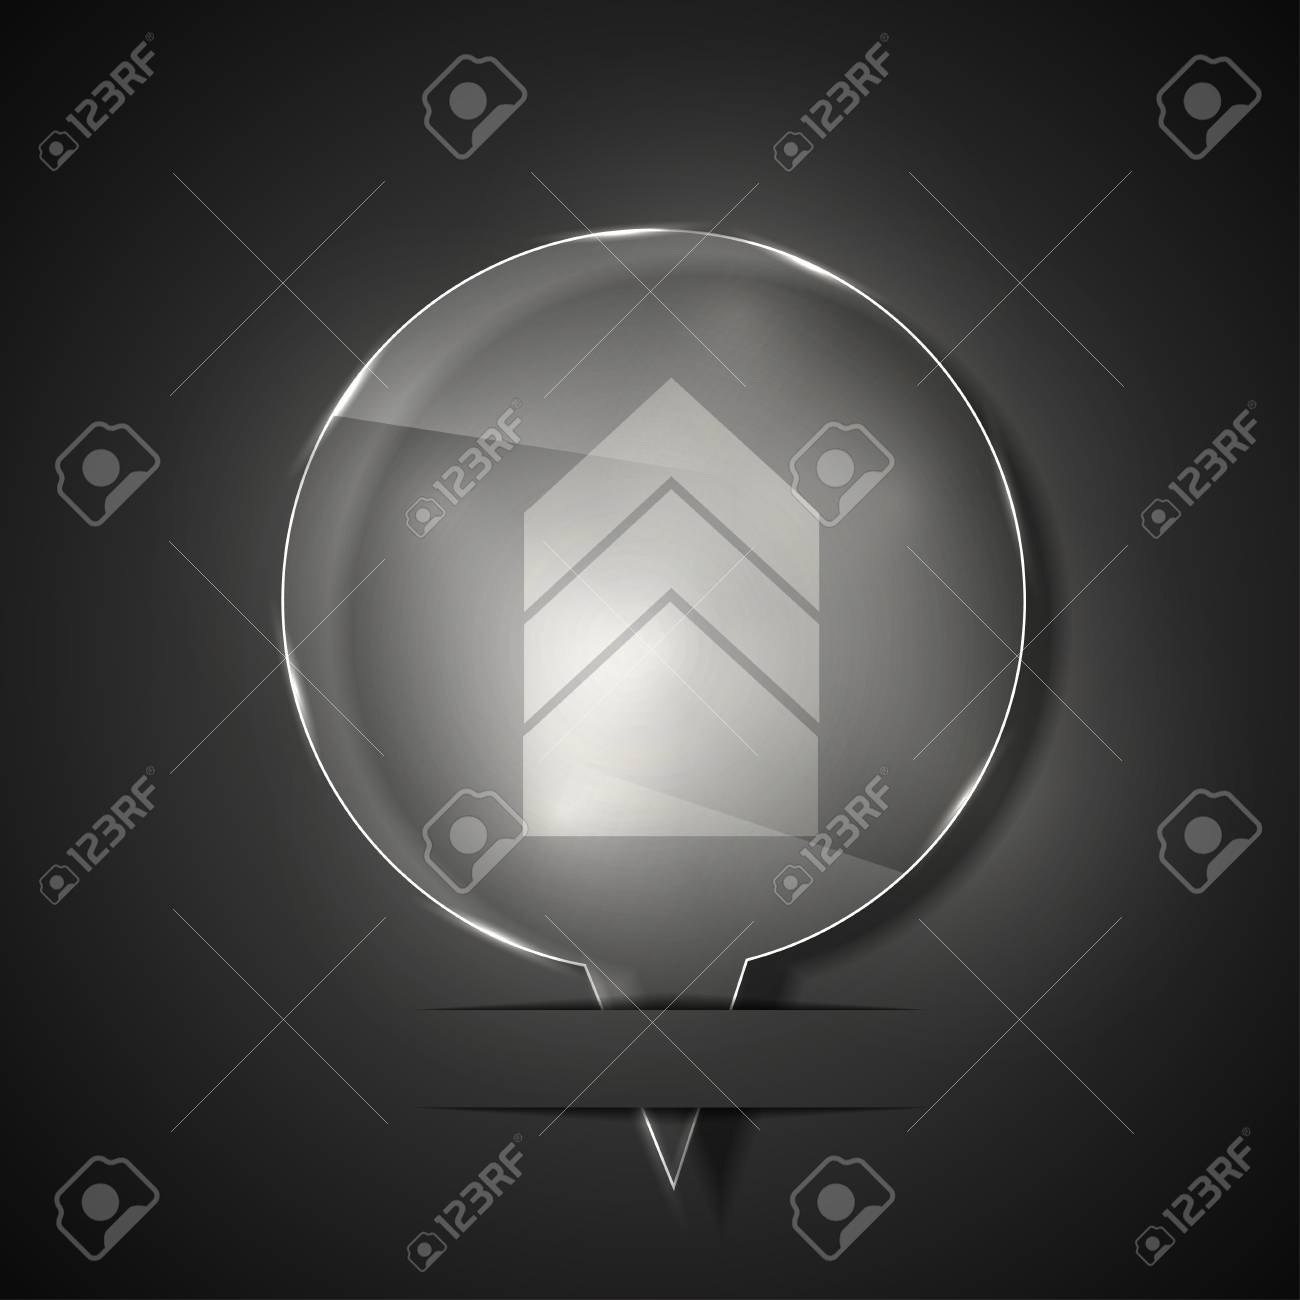 glass arrow icon on gray background. Stock Vector - 15145615